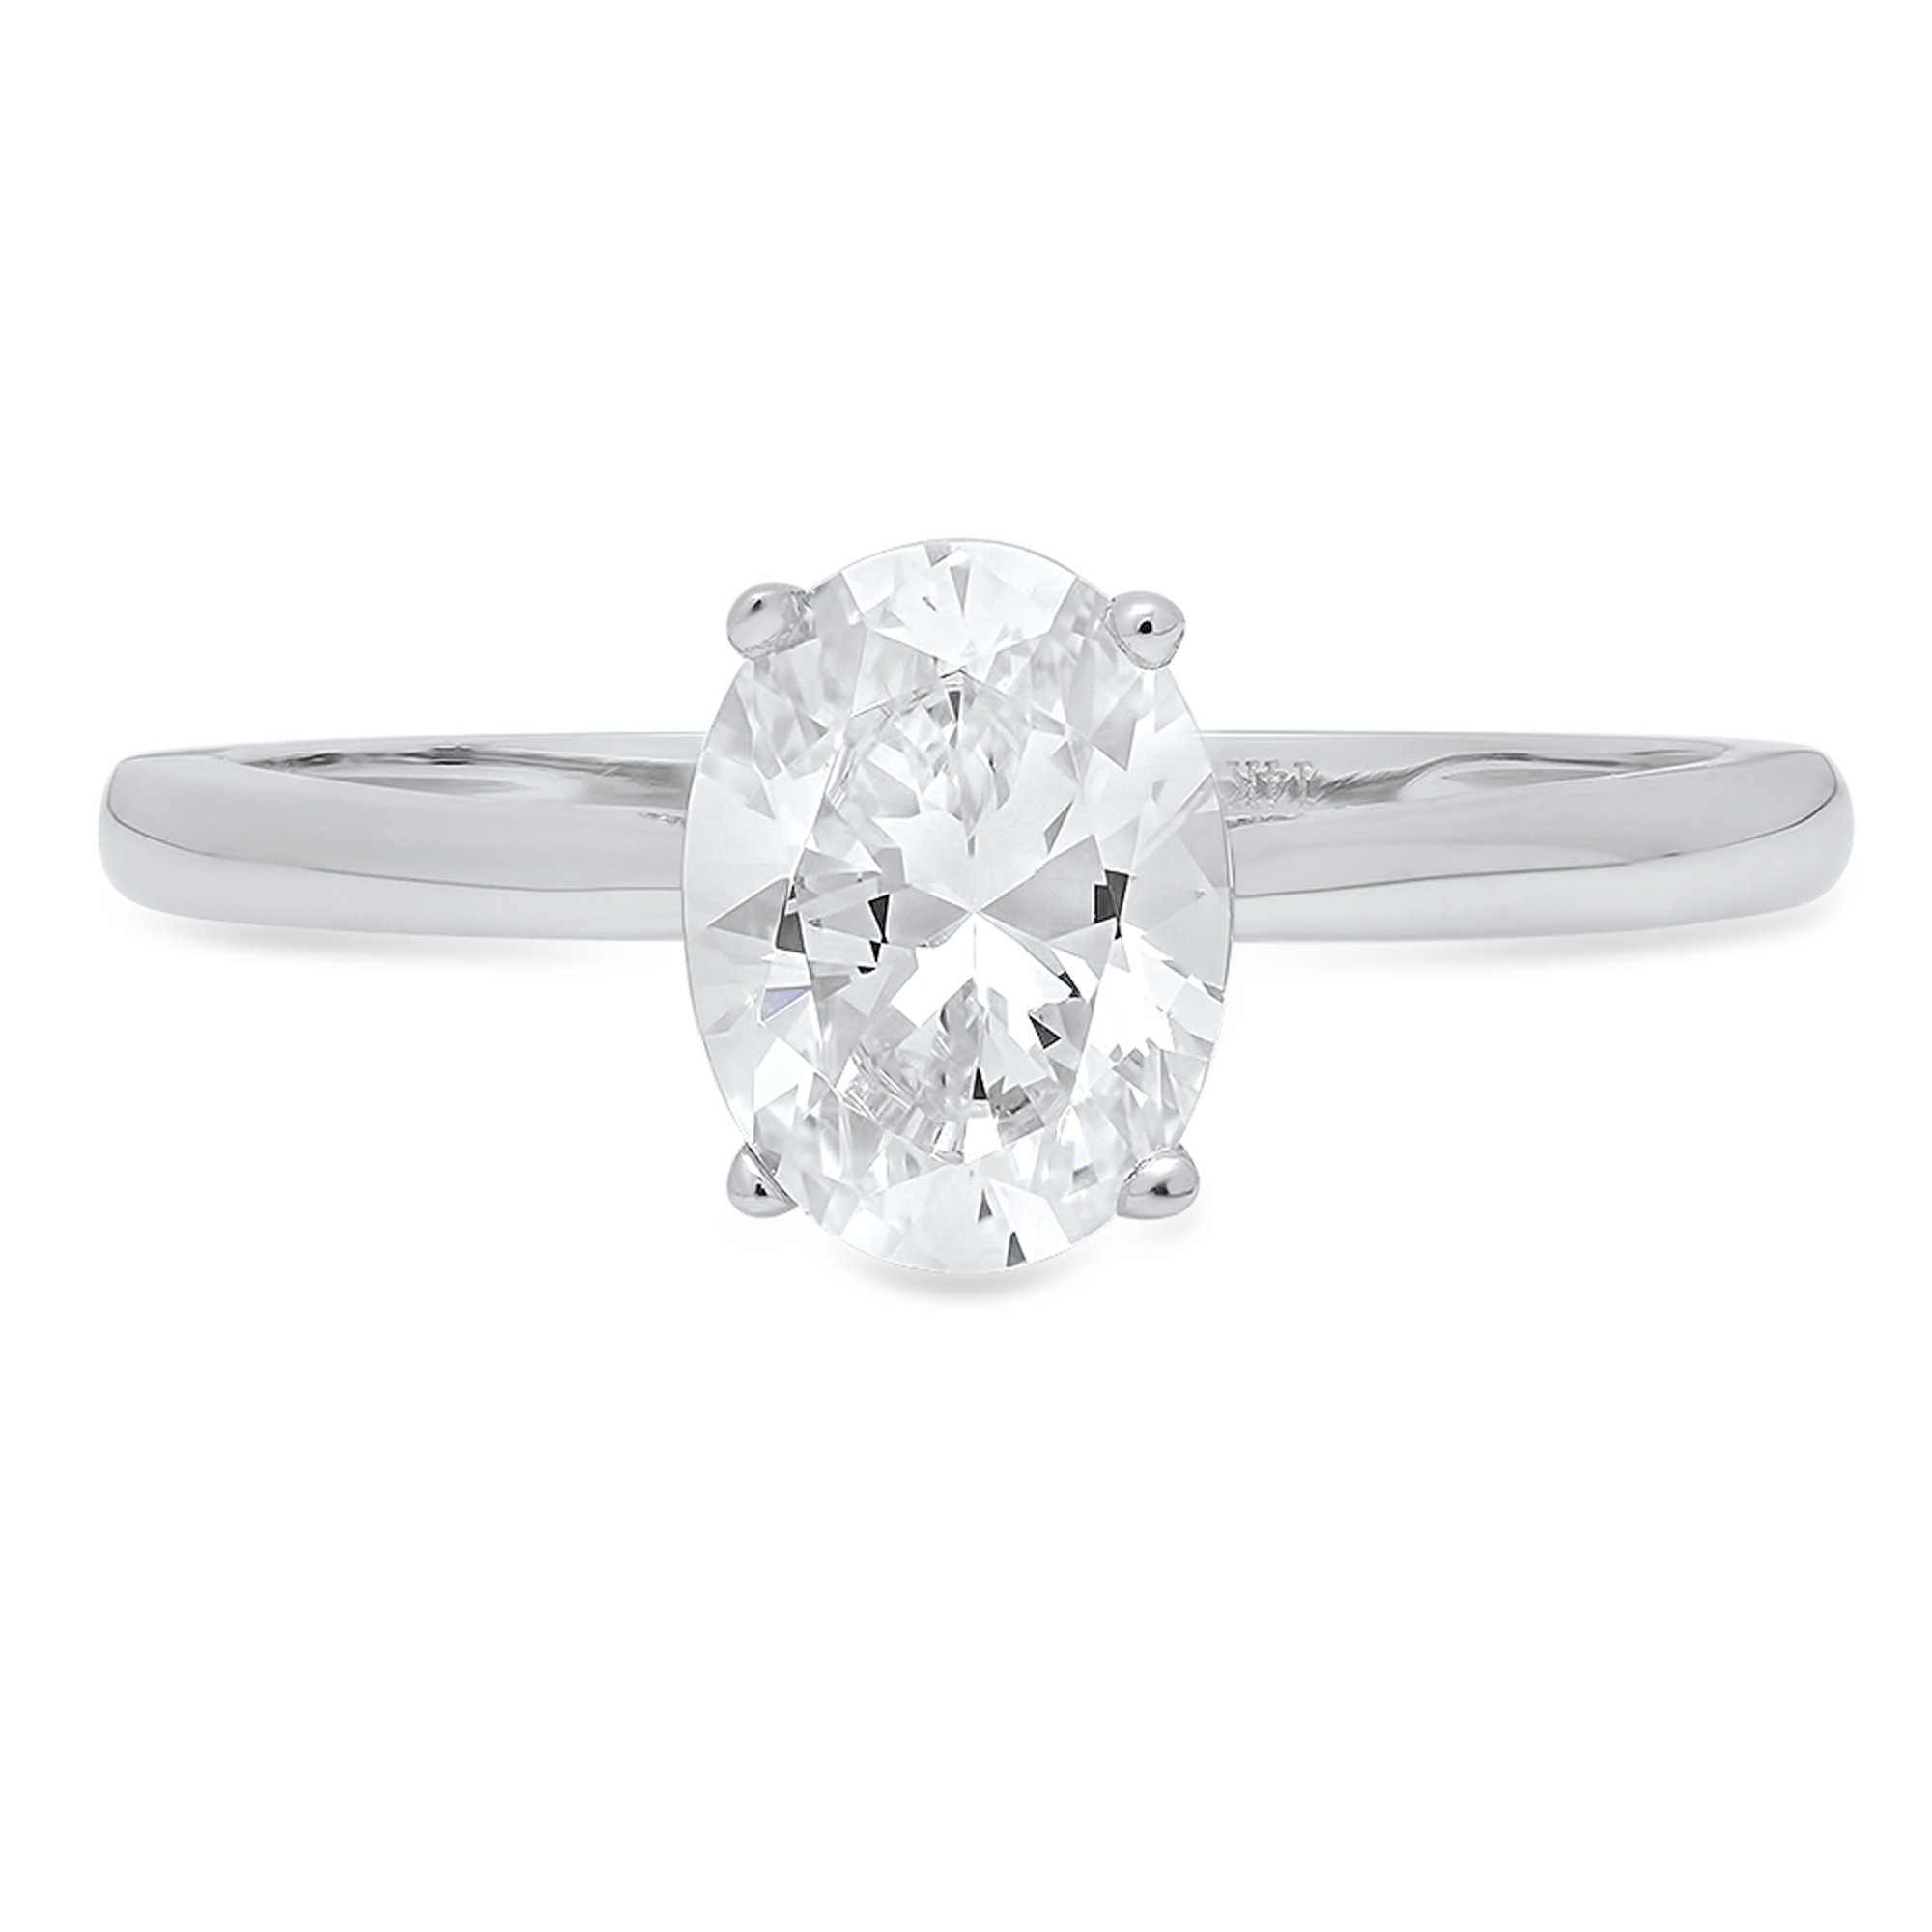 0.95ct Brilliant Oval Cut Solitaire Highest Quality Moissanite Ideal D 4-Prong Statement Ring in Solid Real 14k White Gold for Women